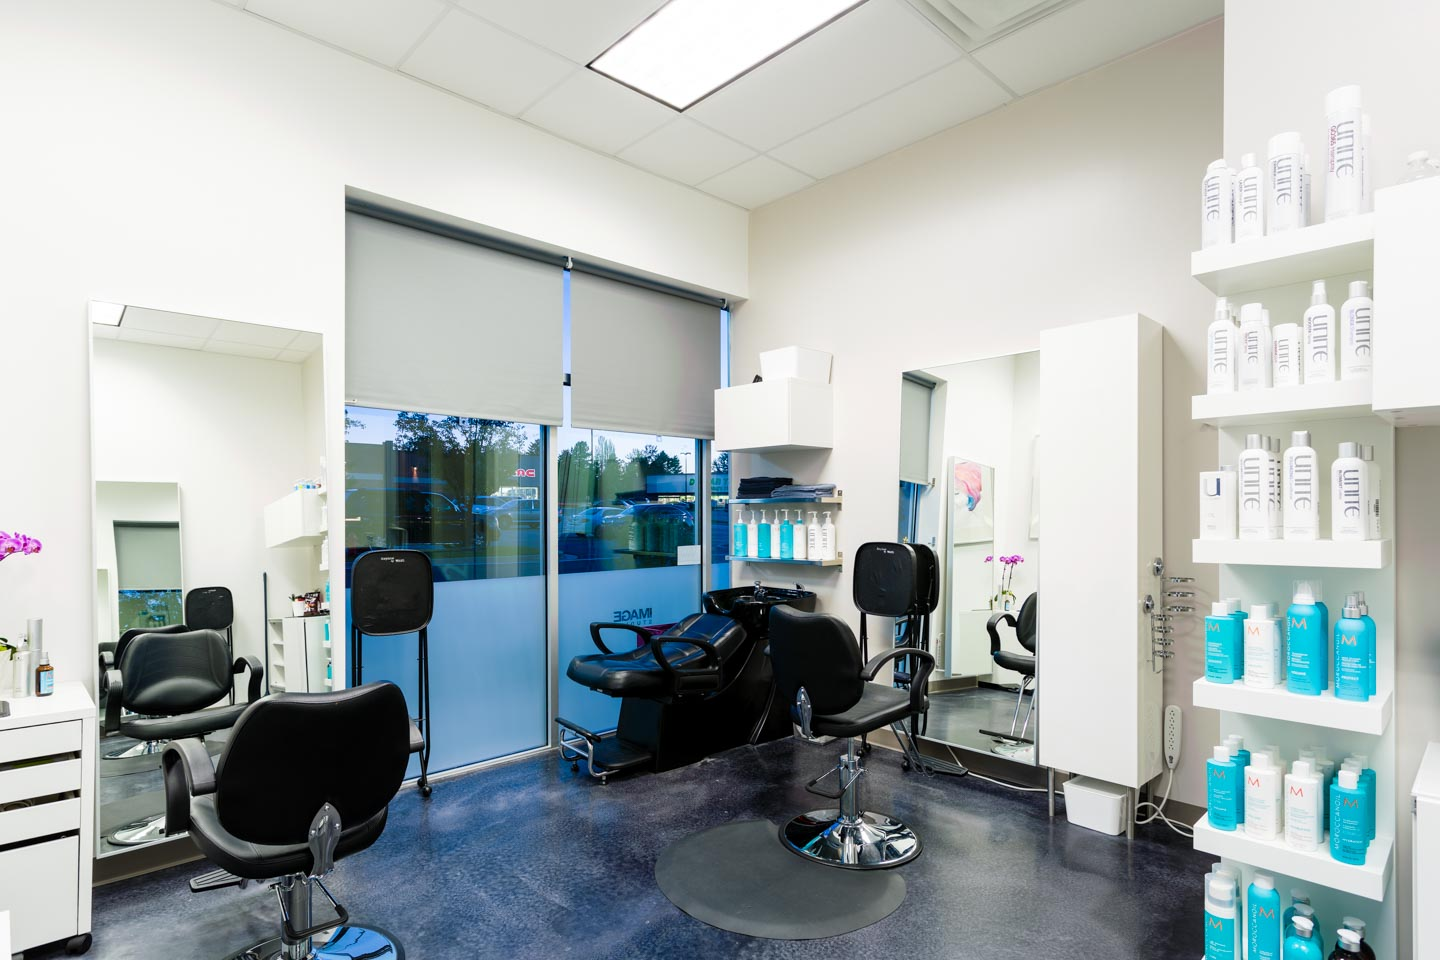 Photographing a sample of the hair salons at Image Studios